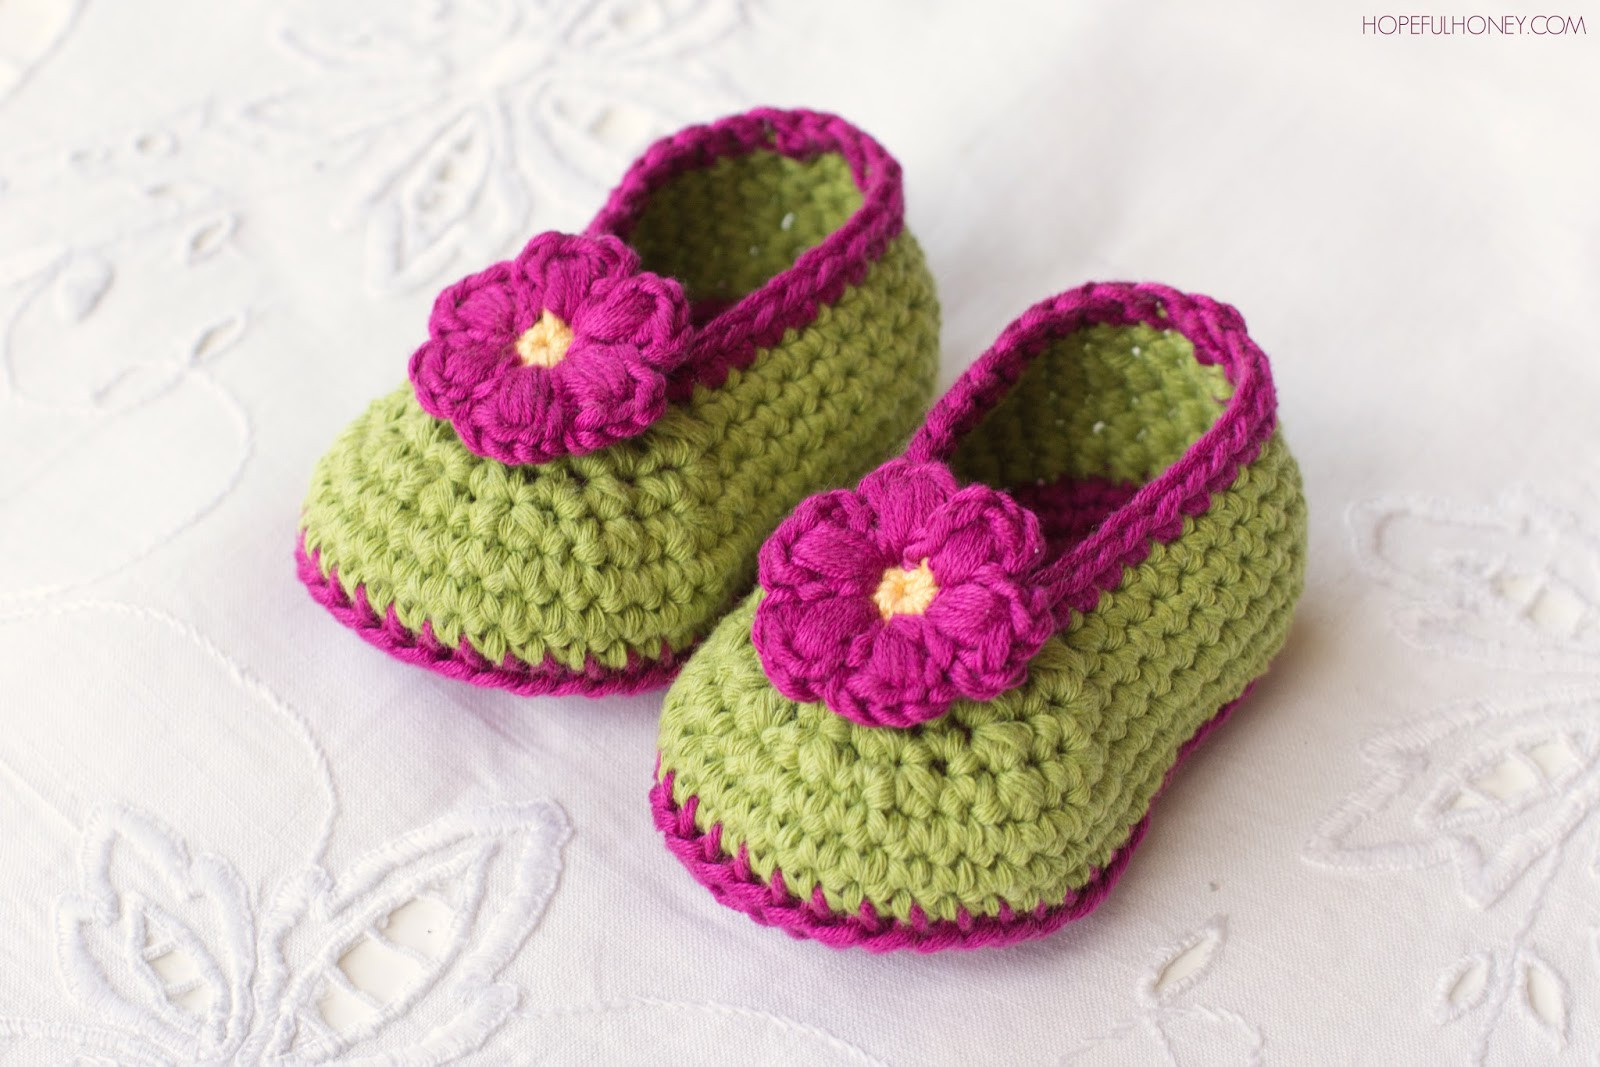 Beautiful Crochet toddler Slippers Free Pattern Free Knitting and Crochet Patterns Of Marvelous 44 Ideas Free Knitting and Crochet Patterns